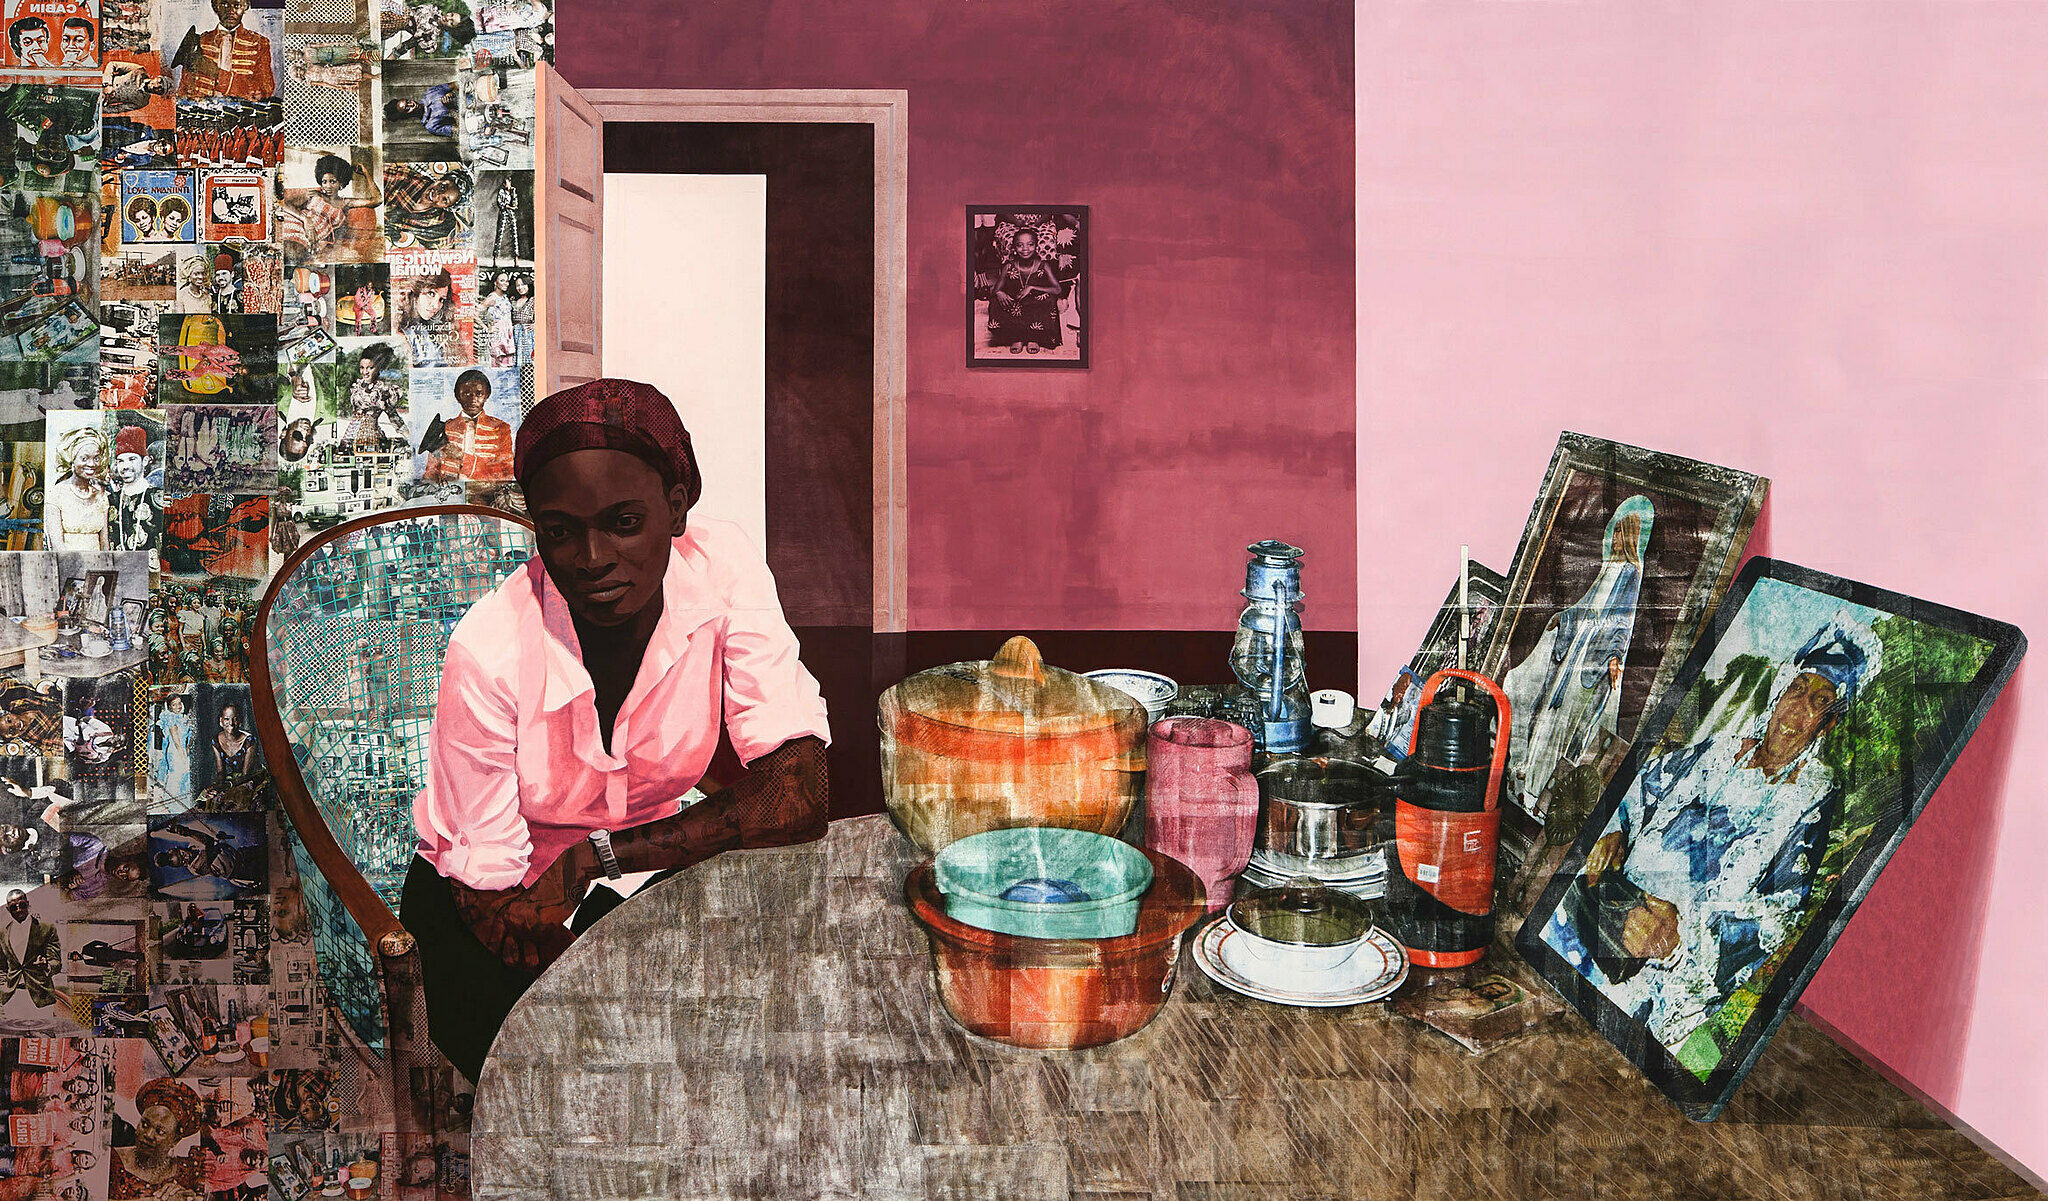 A collaged portrait by Njideka Crosby. A woman sits at a table with photographs behind her.